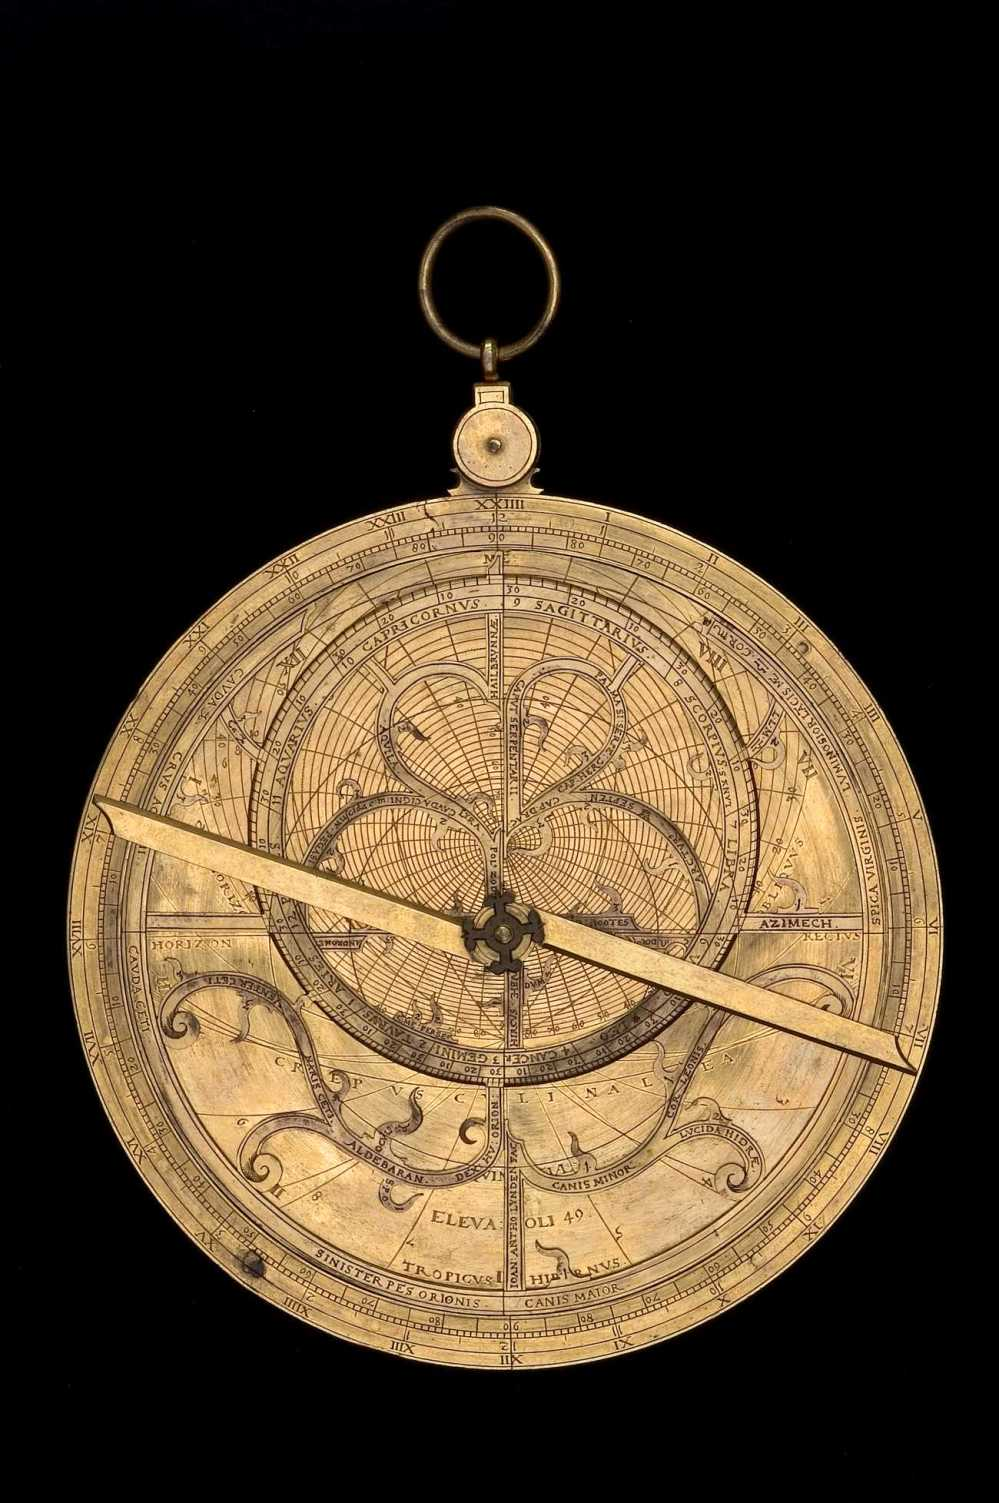 preview image for Astrolabe, by Johann Anton Linden, Heilbronn, Late 16th Century